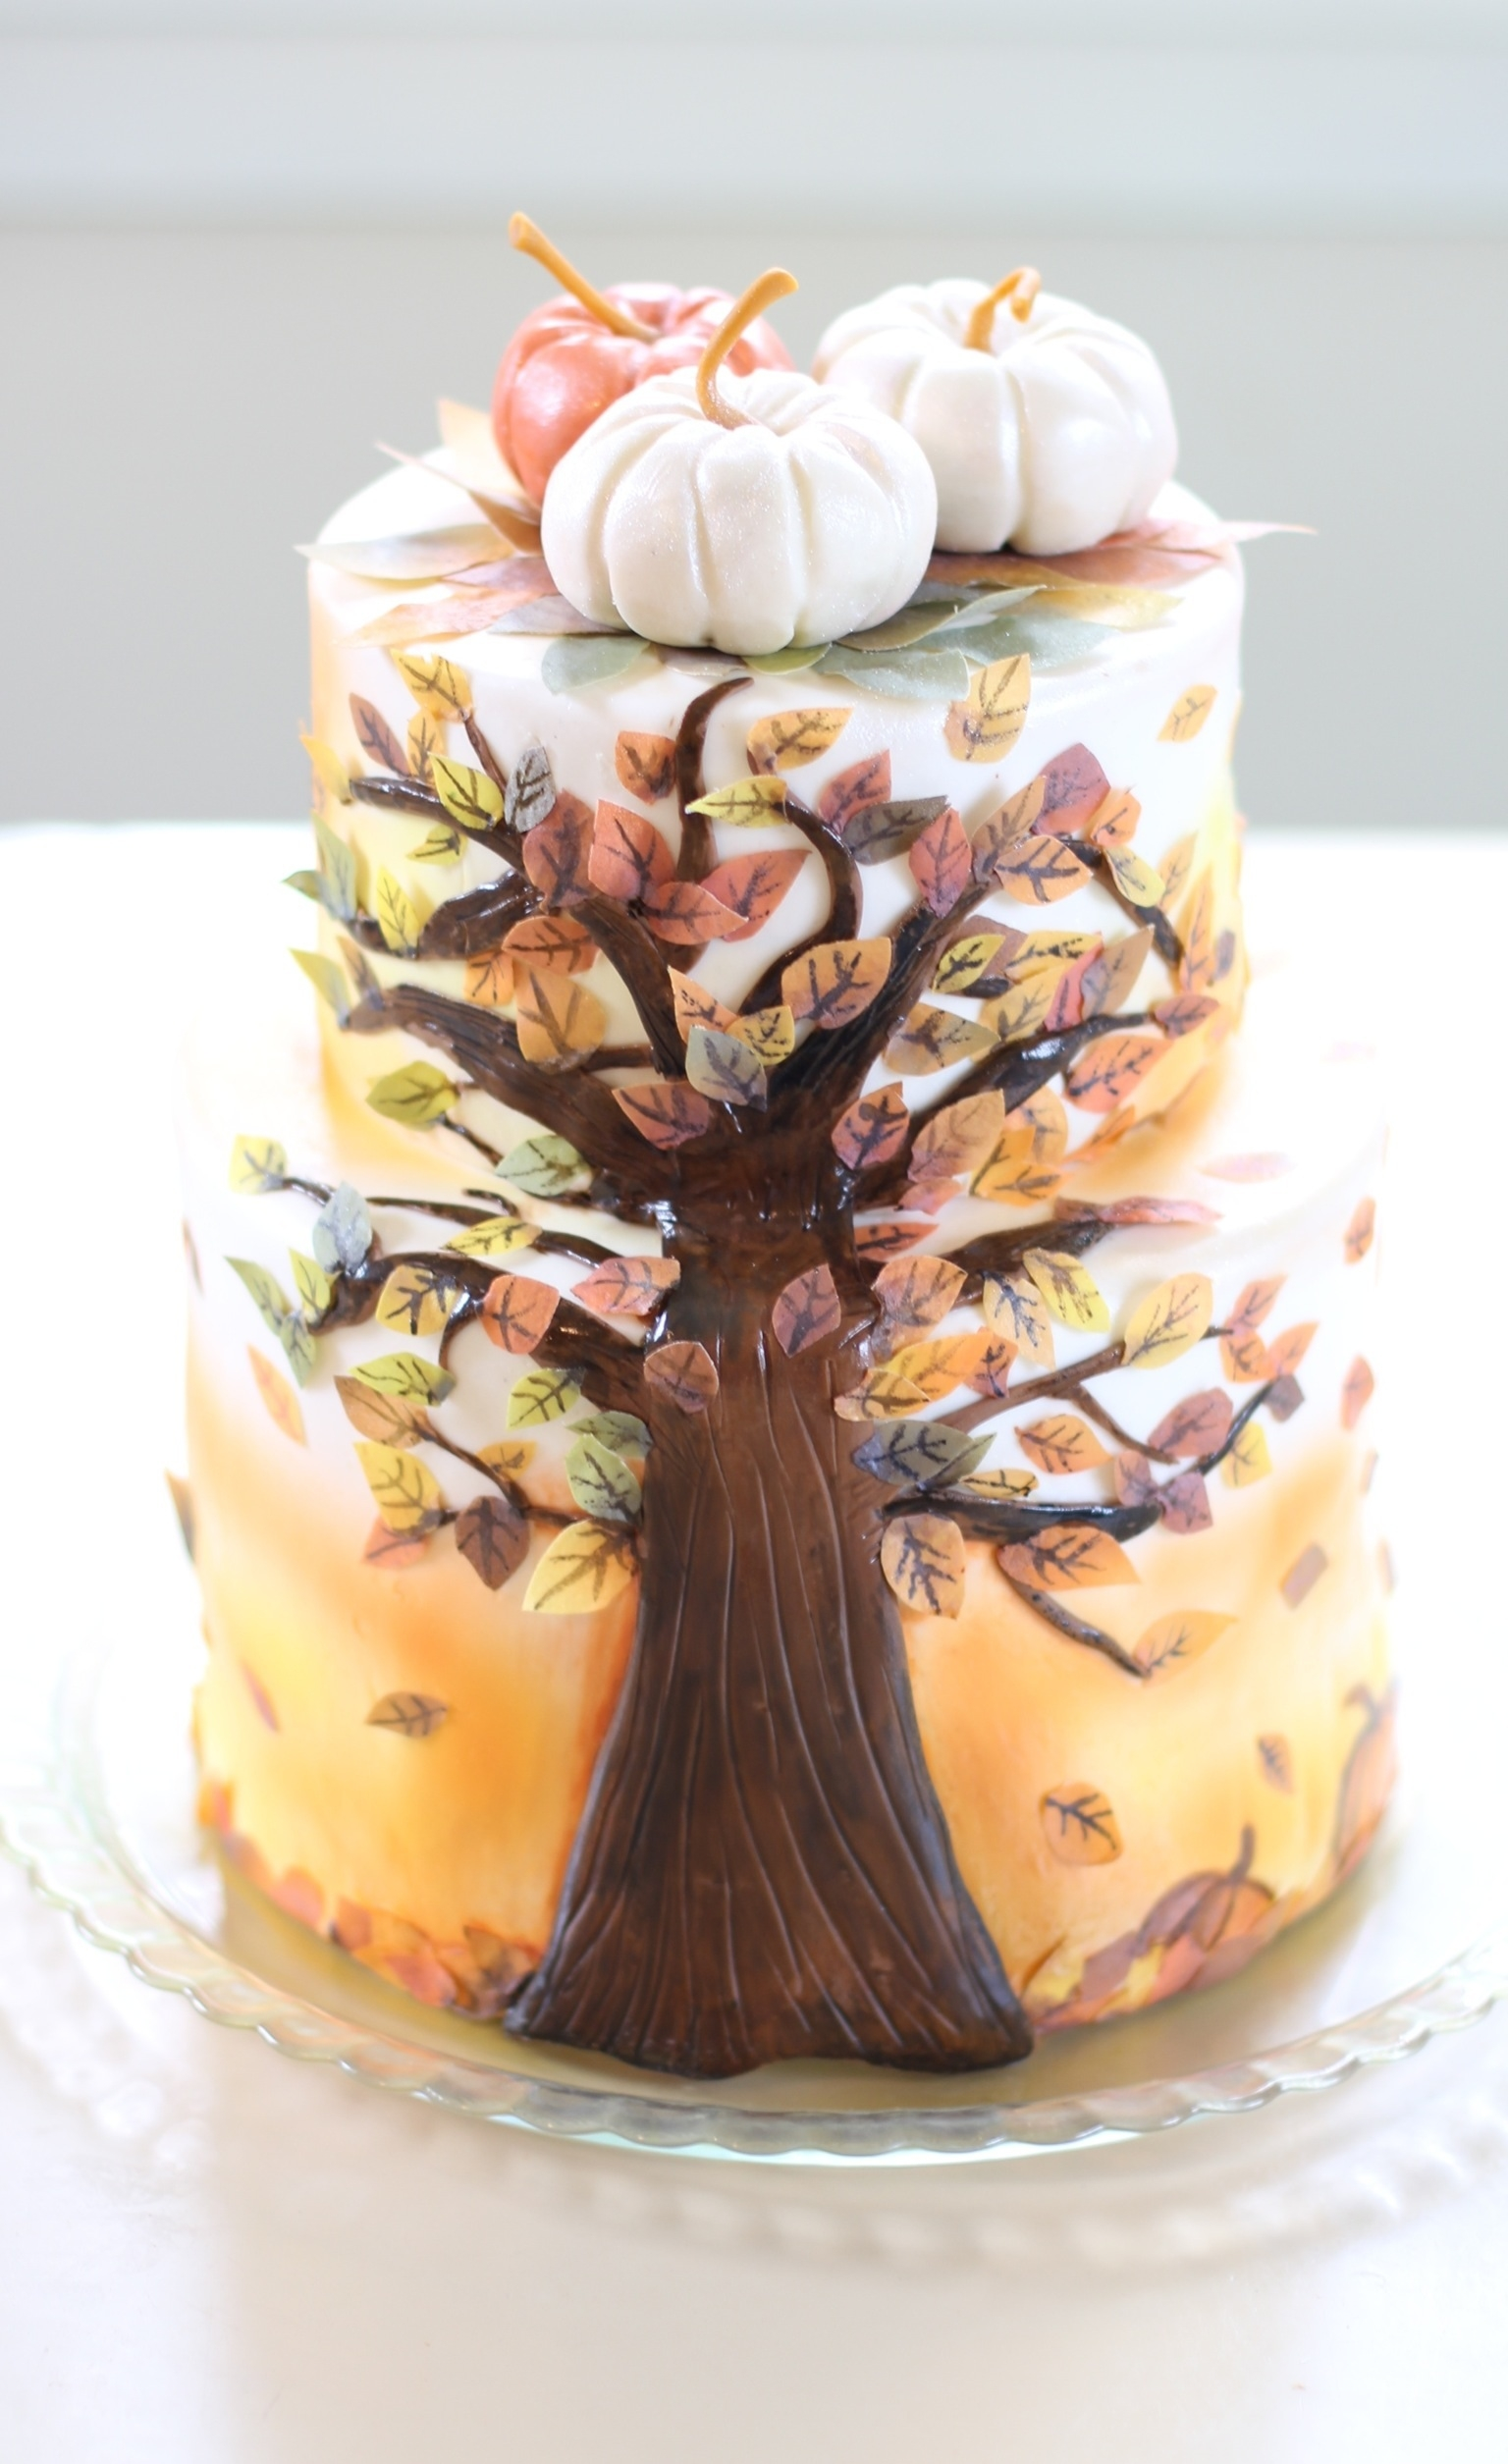 Cake Decorating How To Make Leaves : Fall Leaf Cake - CakeCentral.com